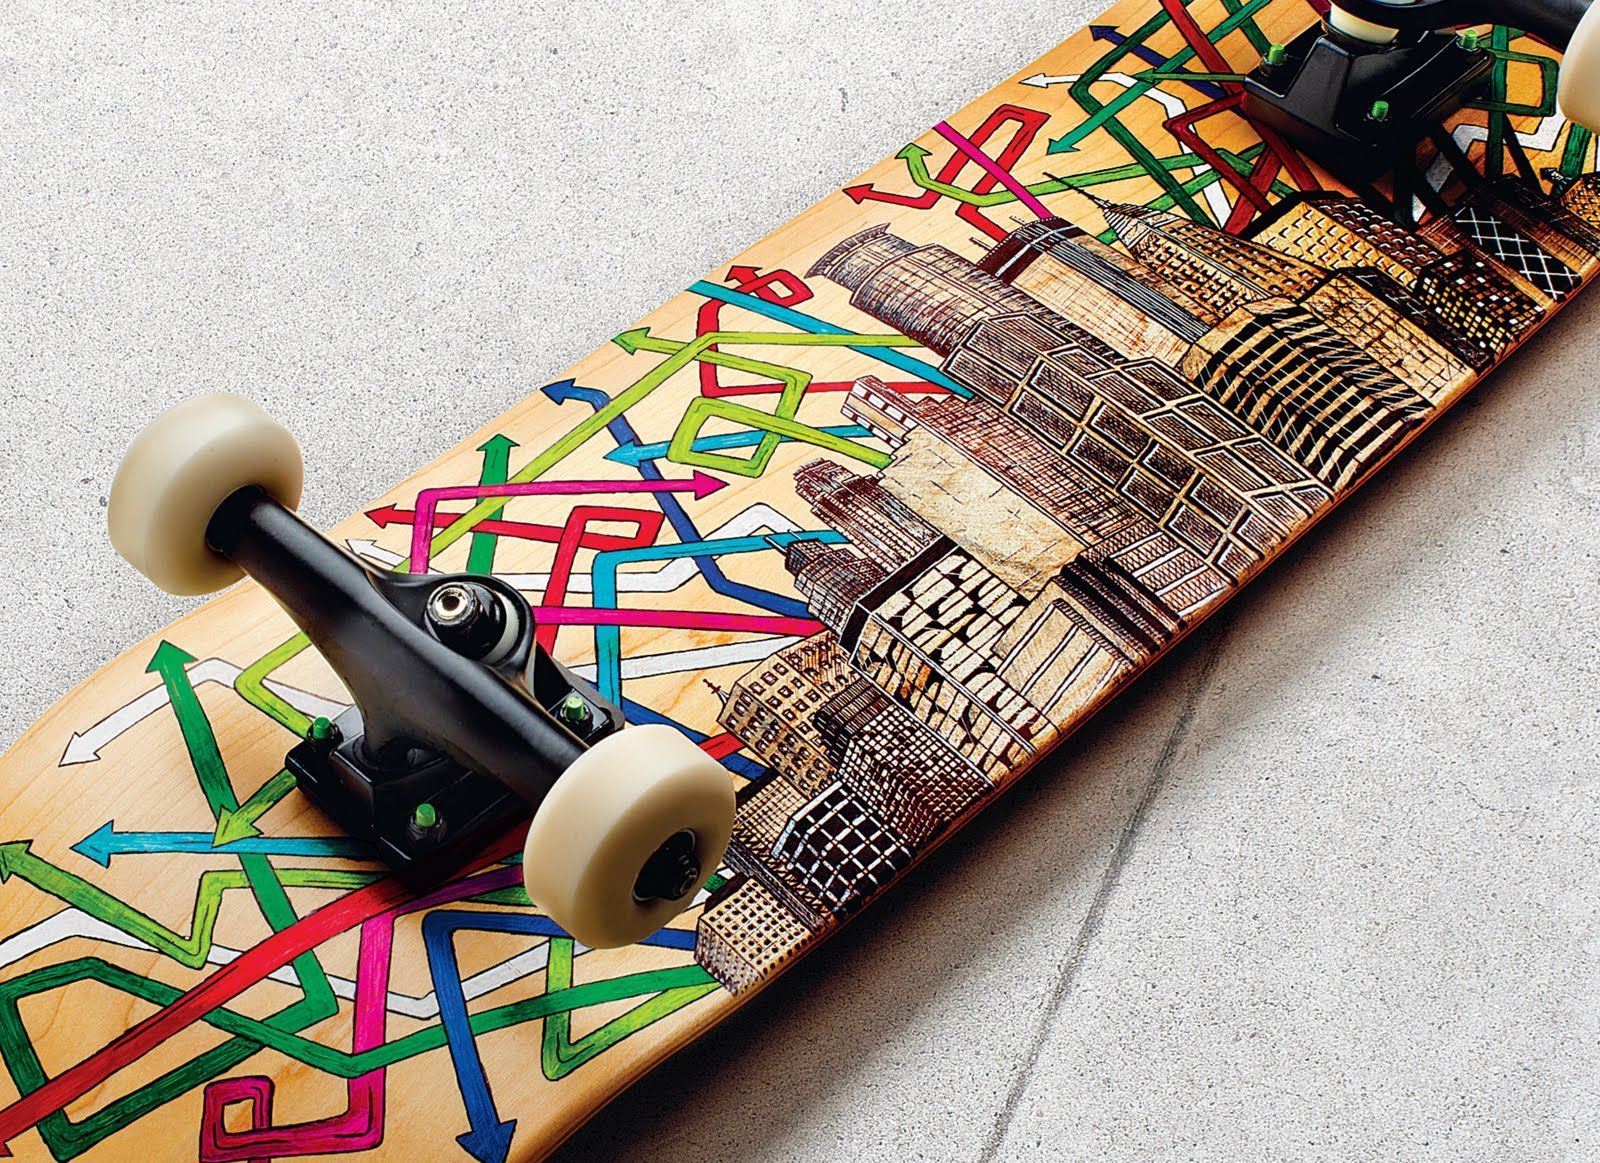 Cool Skate Boards Cool Skateboard  Cool Skateboards Hd Wallpaper 6  Skate .